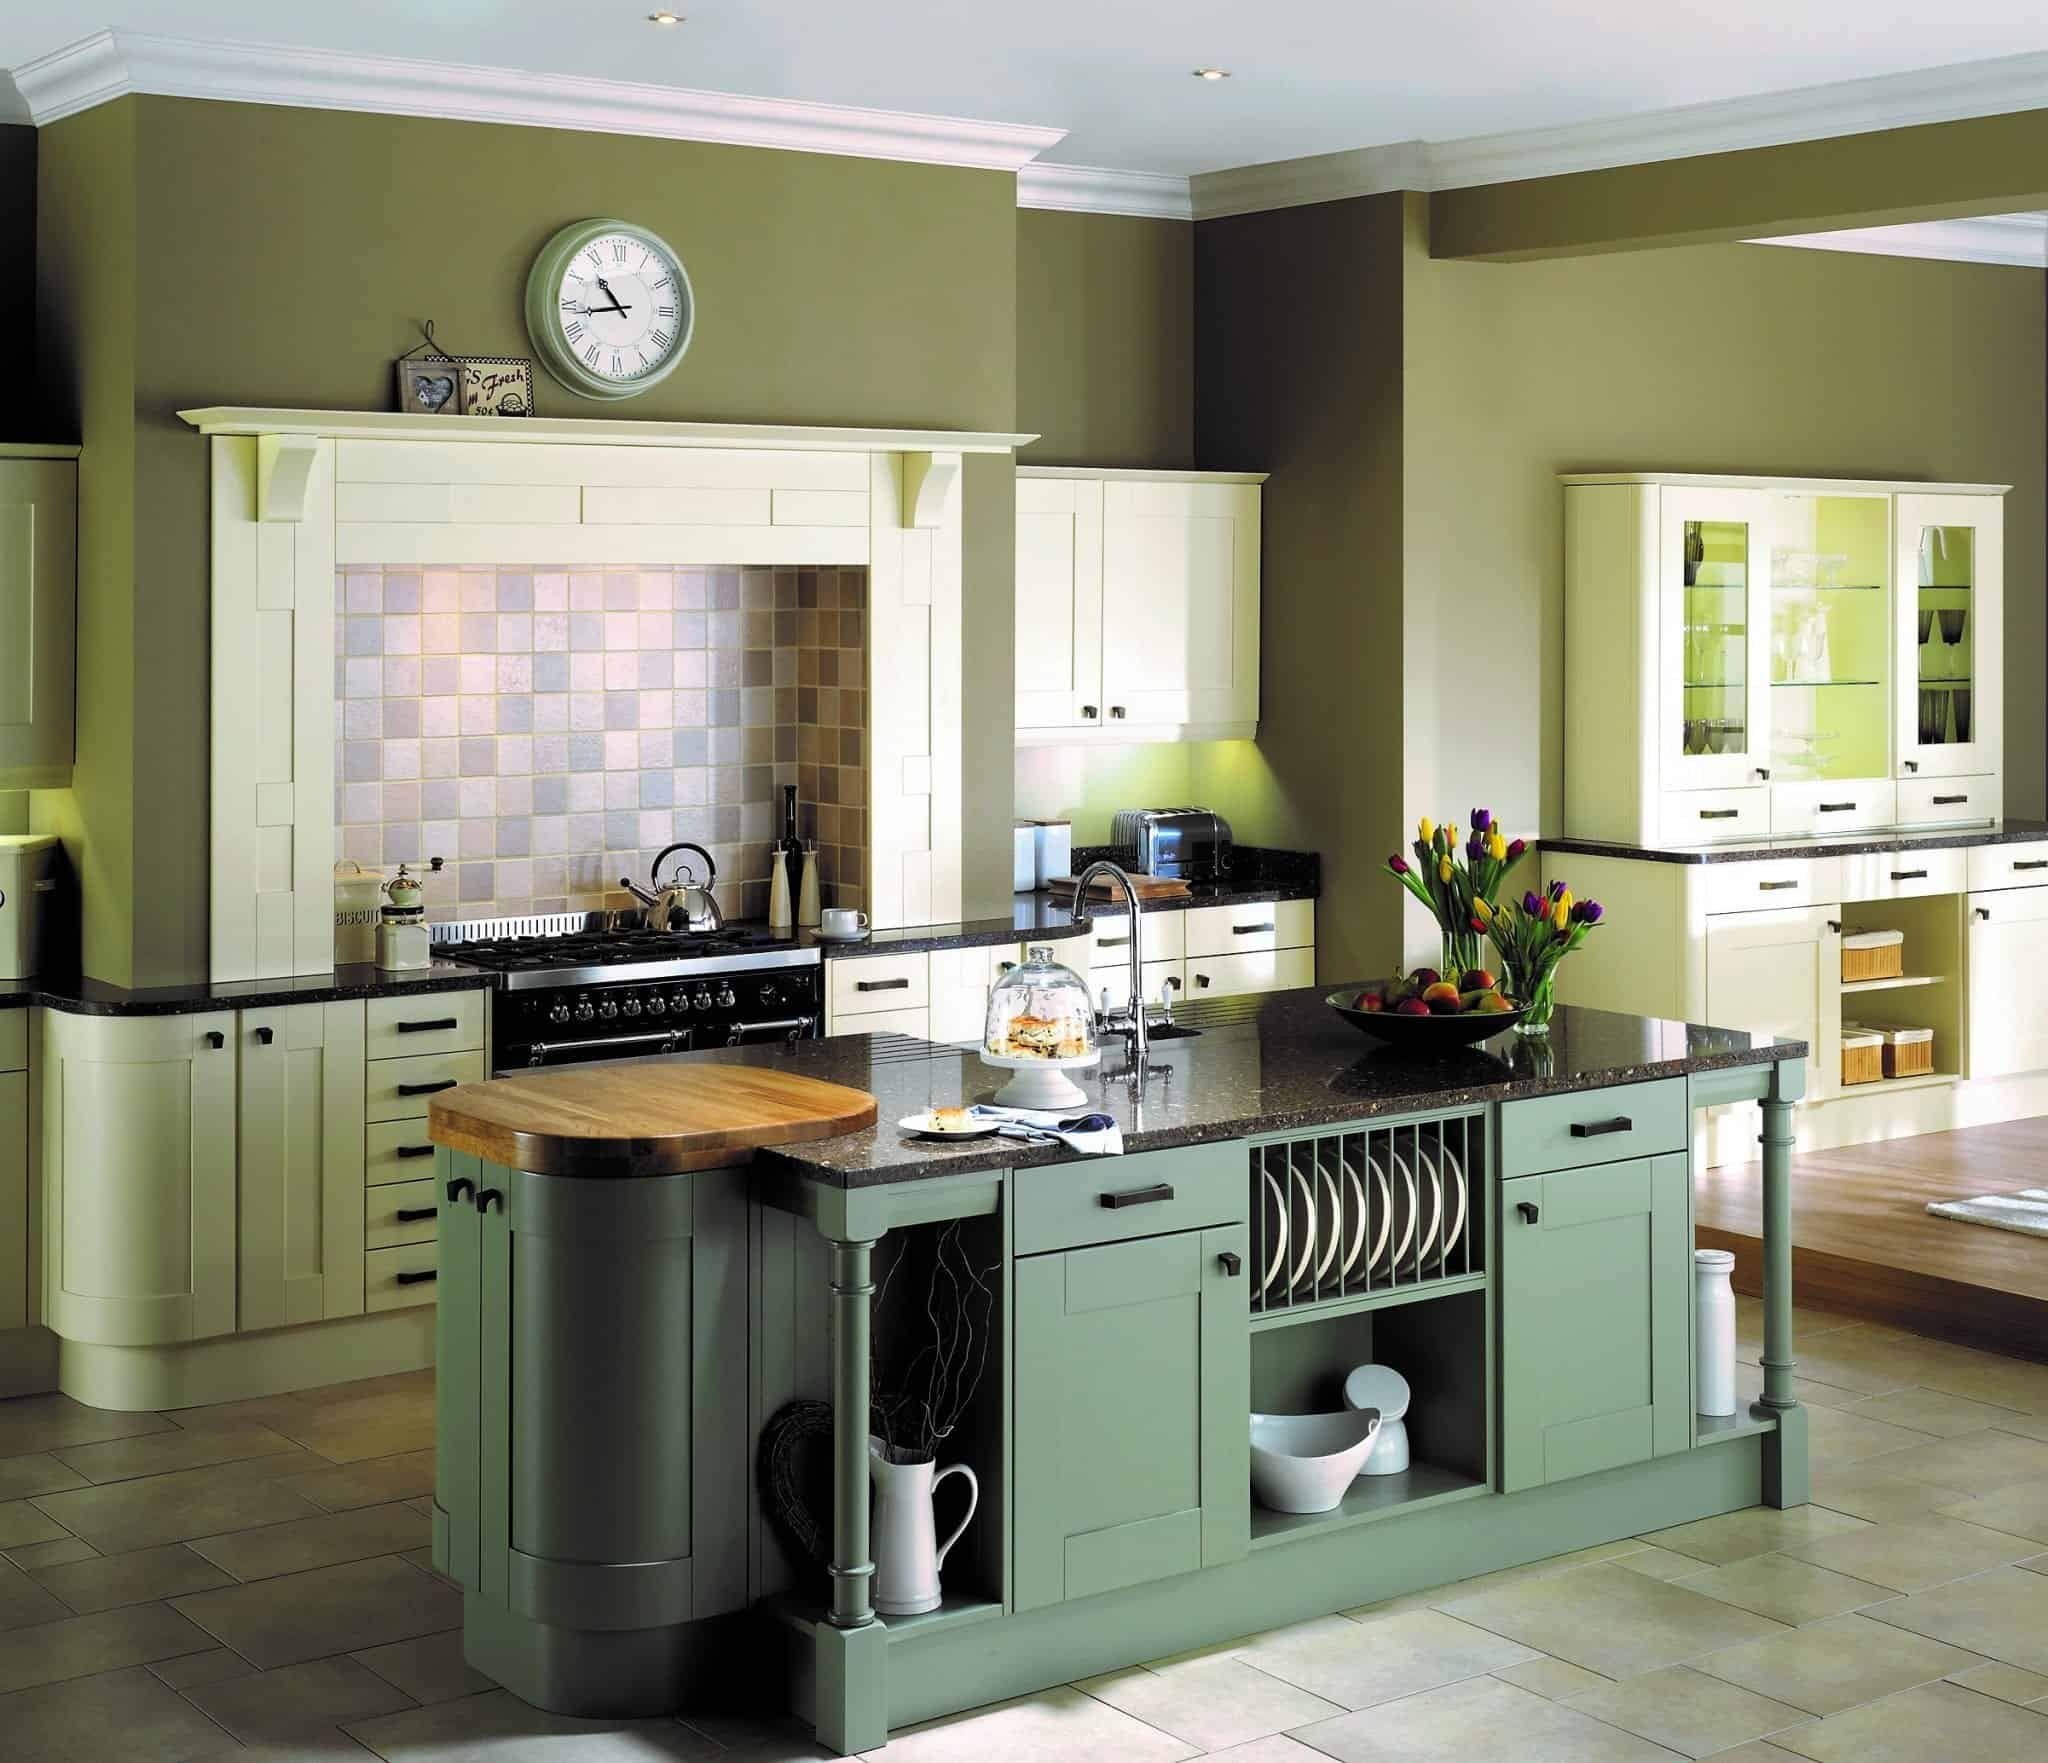 Alchemy style kitchen in Olive Green